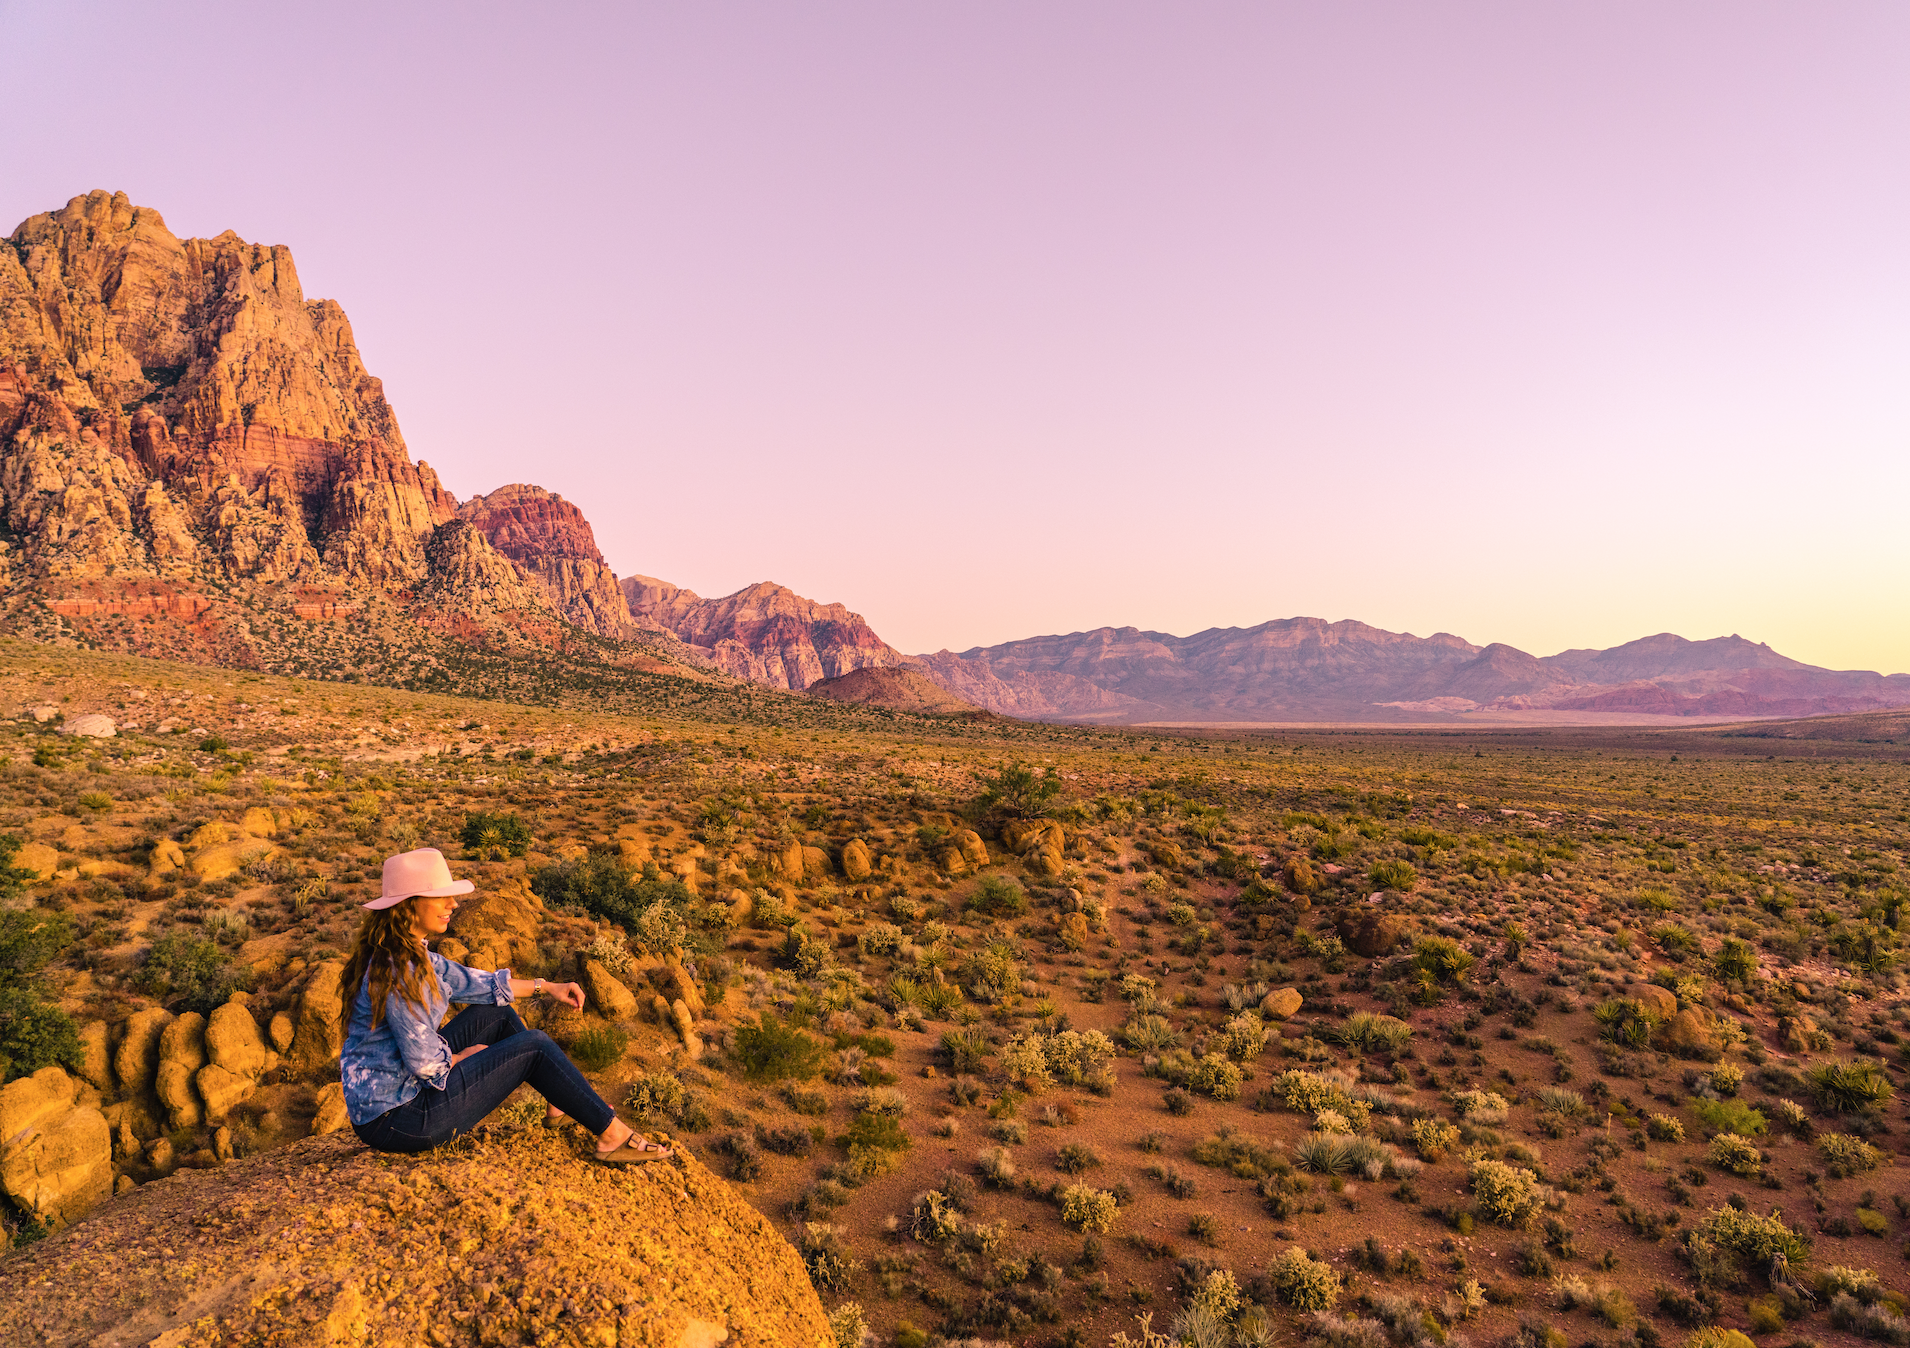 Spring Mountain State Park offers up a picture perfect sunrise, and is one of the best day trips from Las Vegas in Southern Nevada